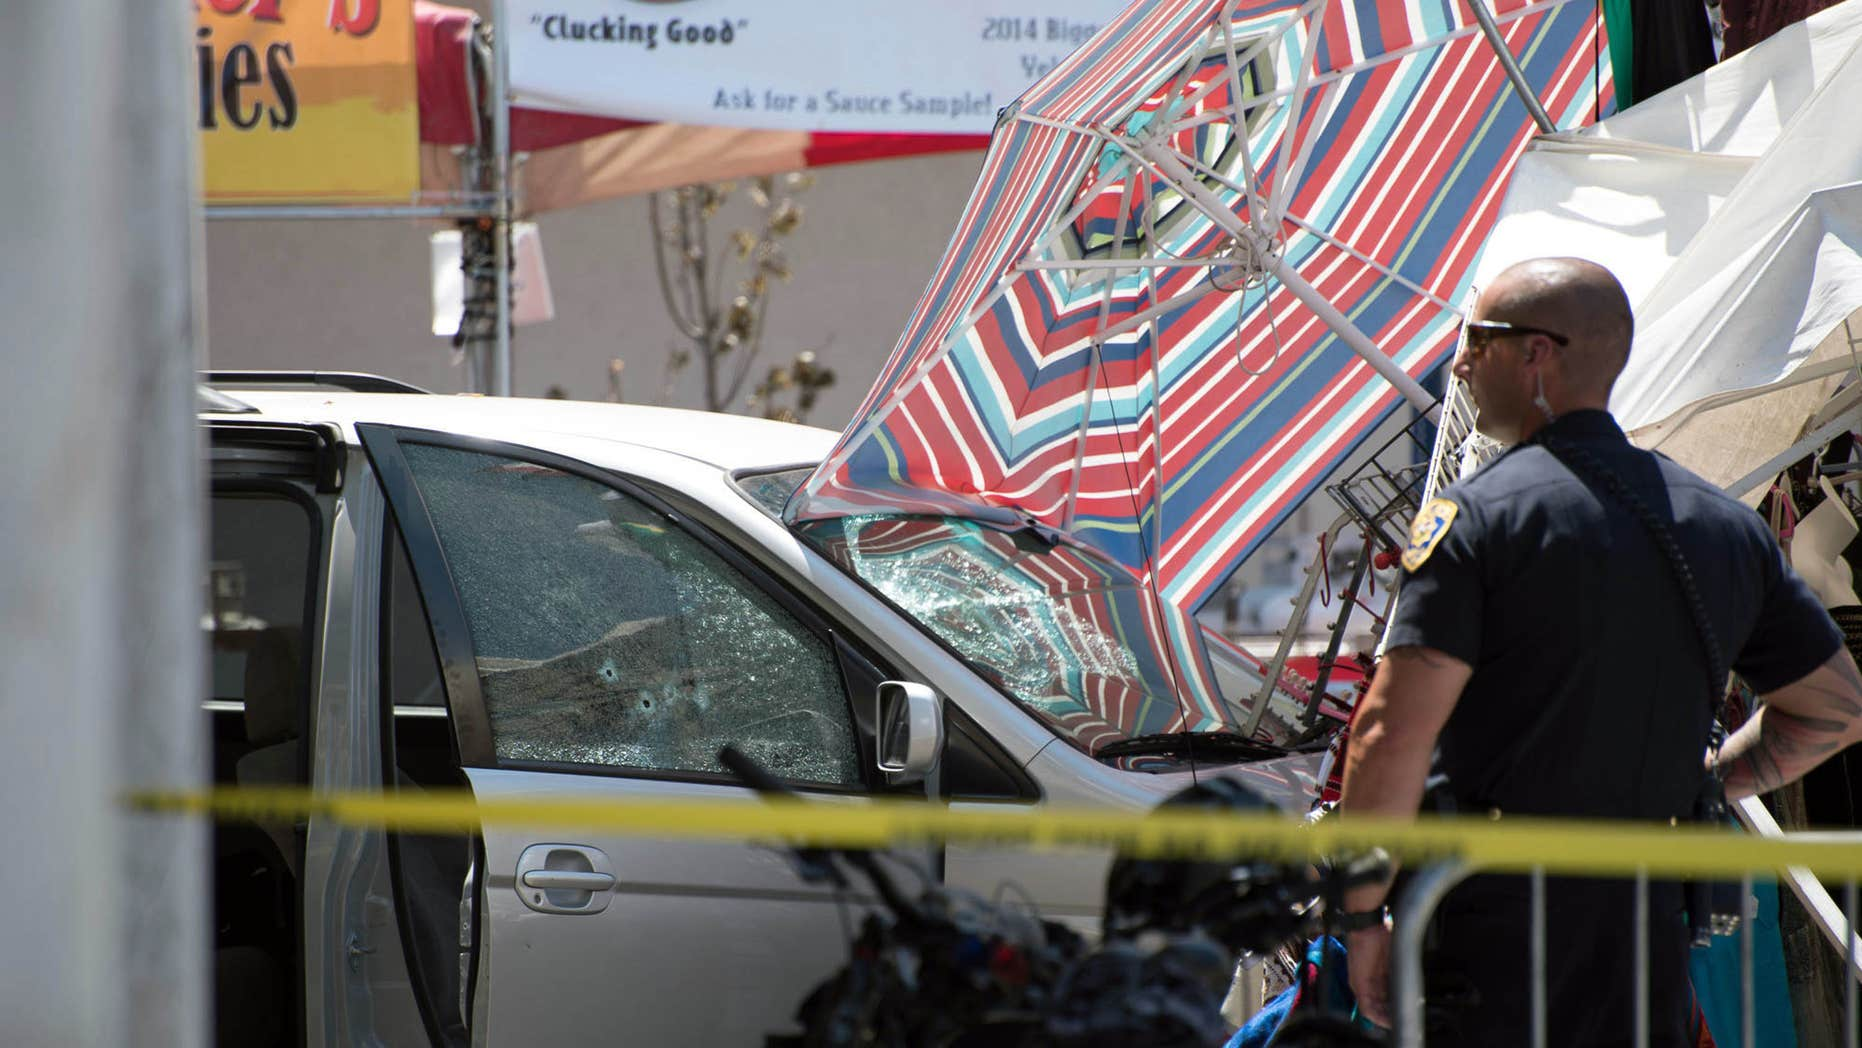 A Reno police officer stands guard at the scene after a minivan crashed into a vendor's tent at the Biggest Little City Wing Fest in downtown Reno, Nev.